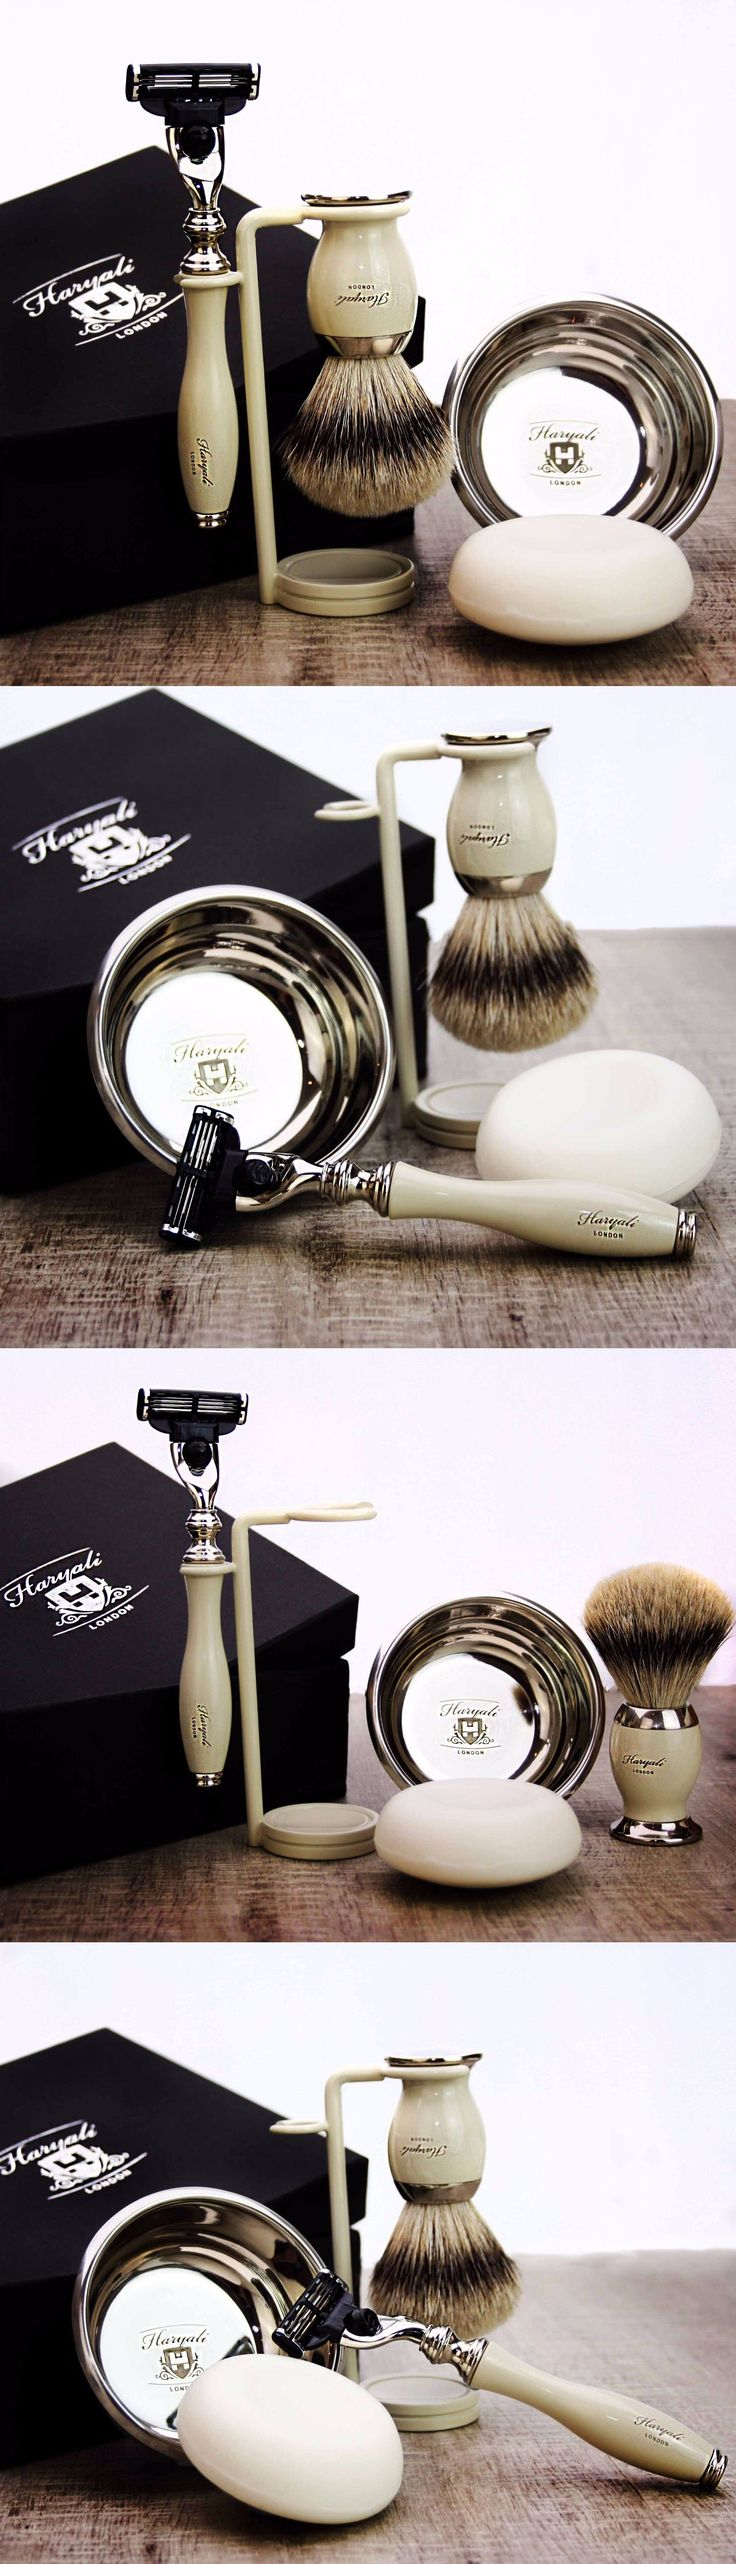 Shaving Brushes and Mugs: Shaving And Grooming Set |Gillette Mach3 And Silvertip Badger Brush| Men S Kit Gift -> BUY IT NOW ONLY: $59.99 on eBay!